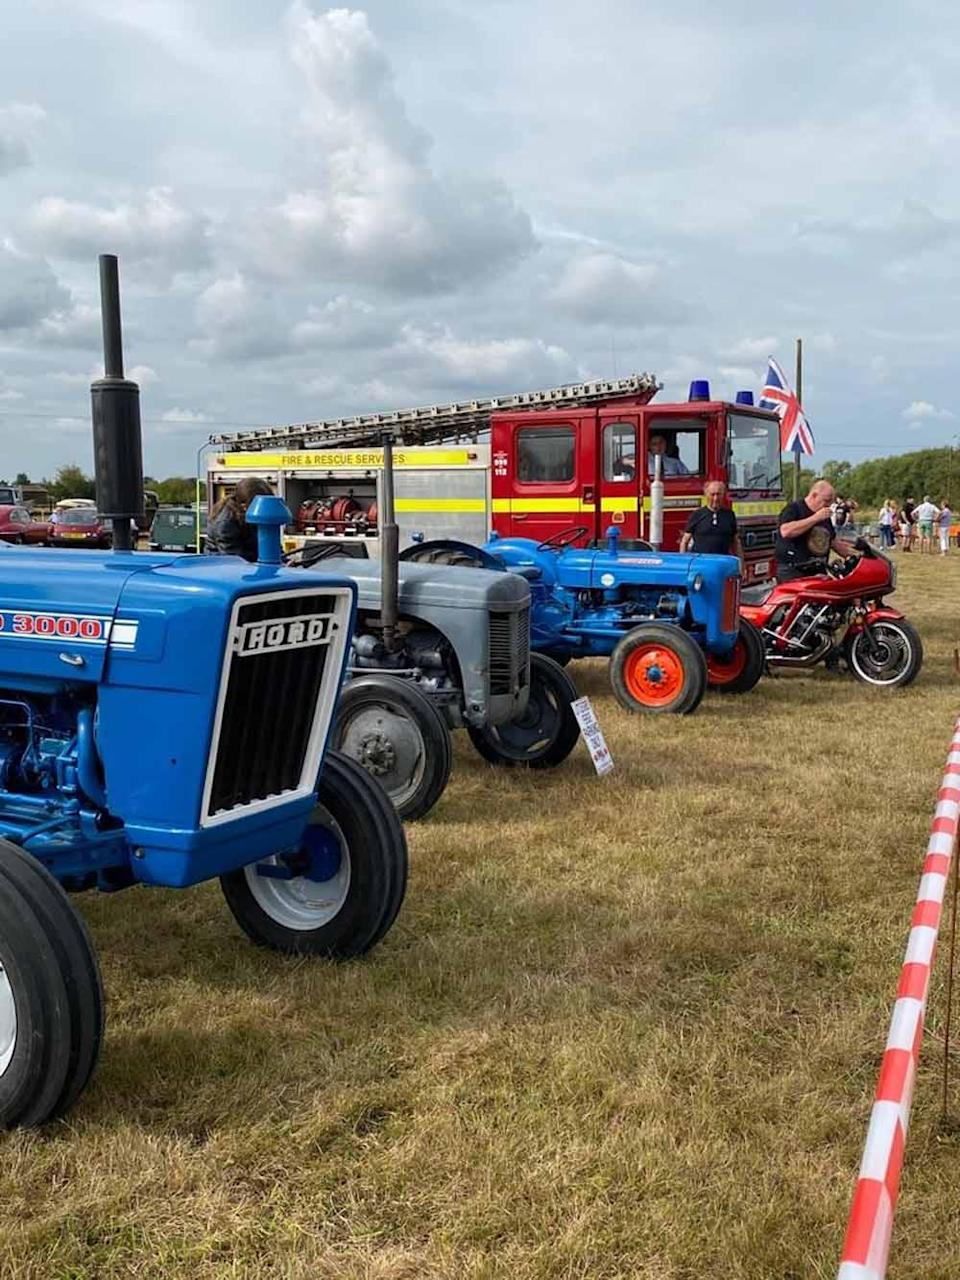 Max has been organising the classic car shows for seven years. (Collect/PA Real Life)